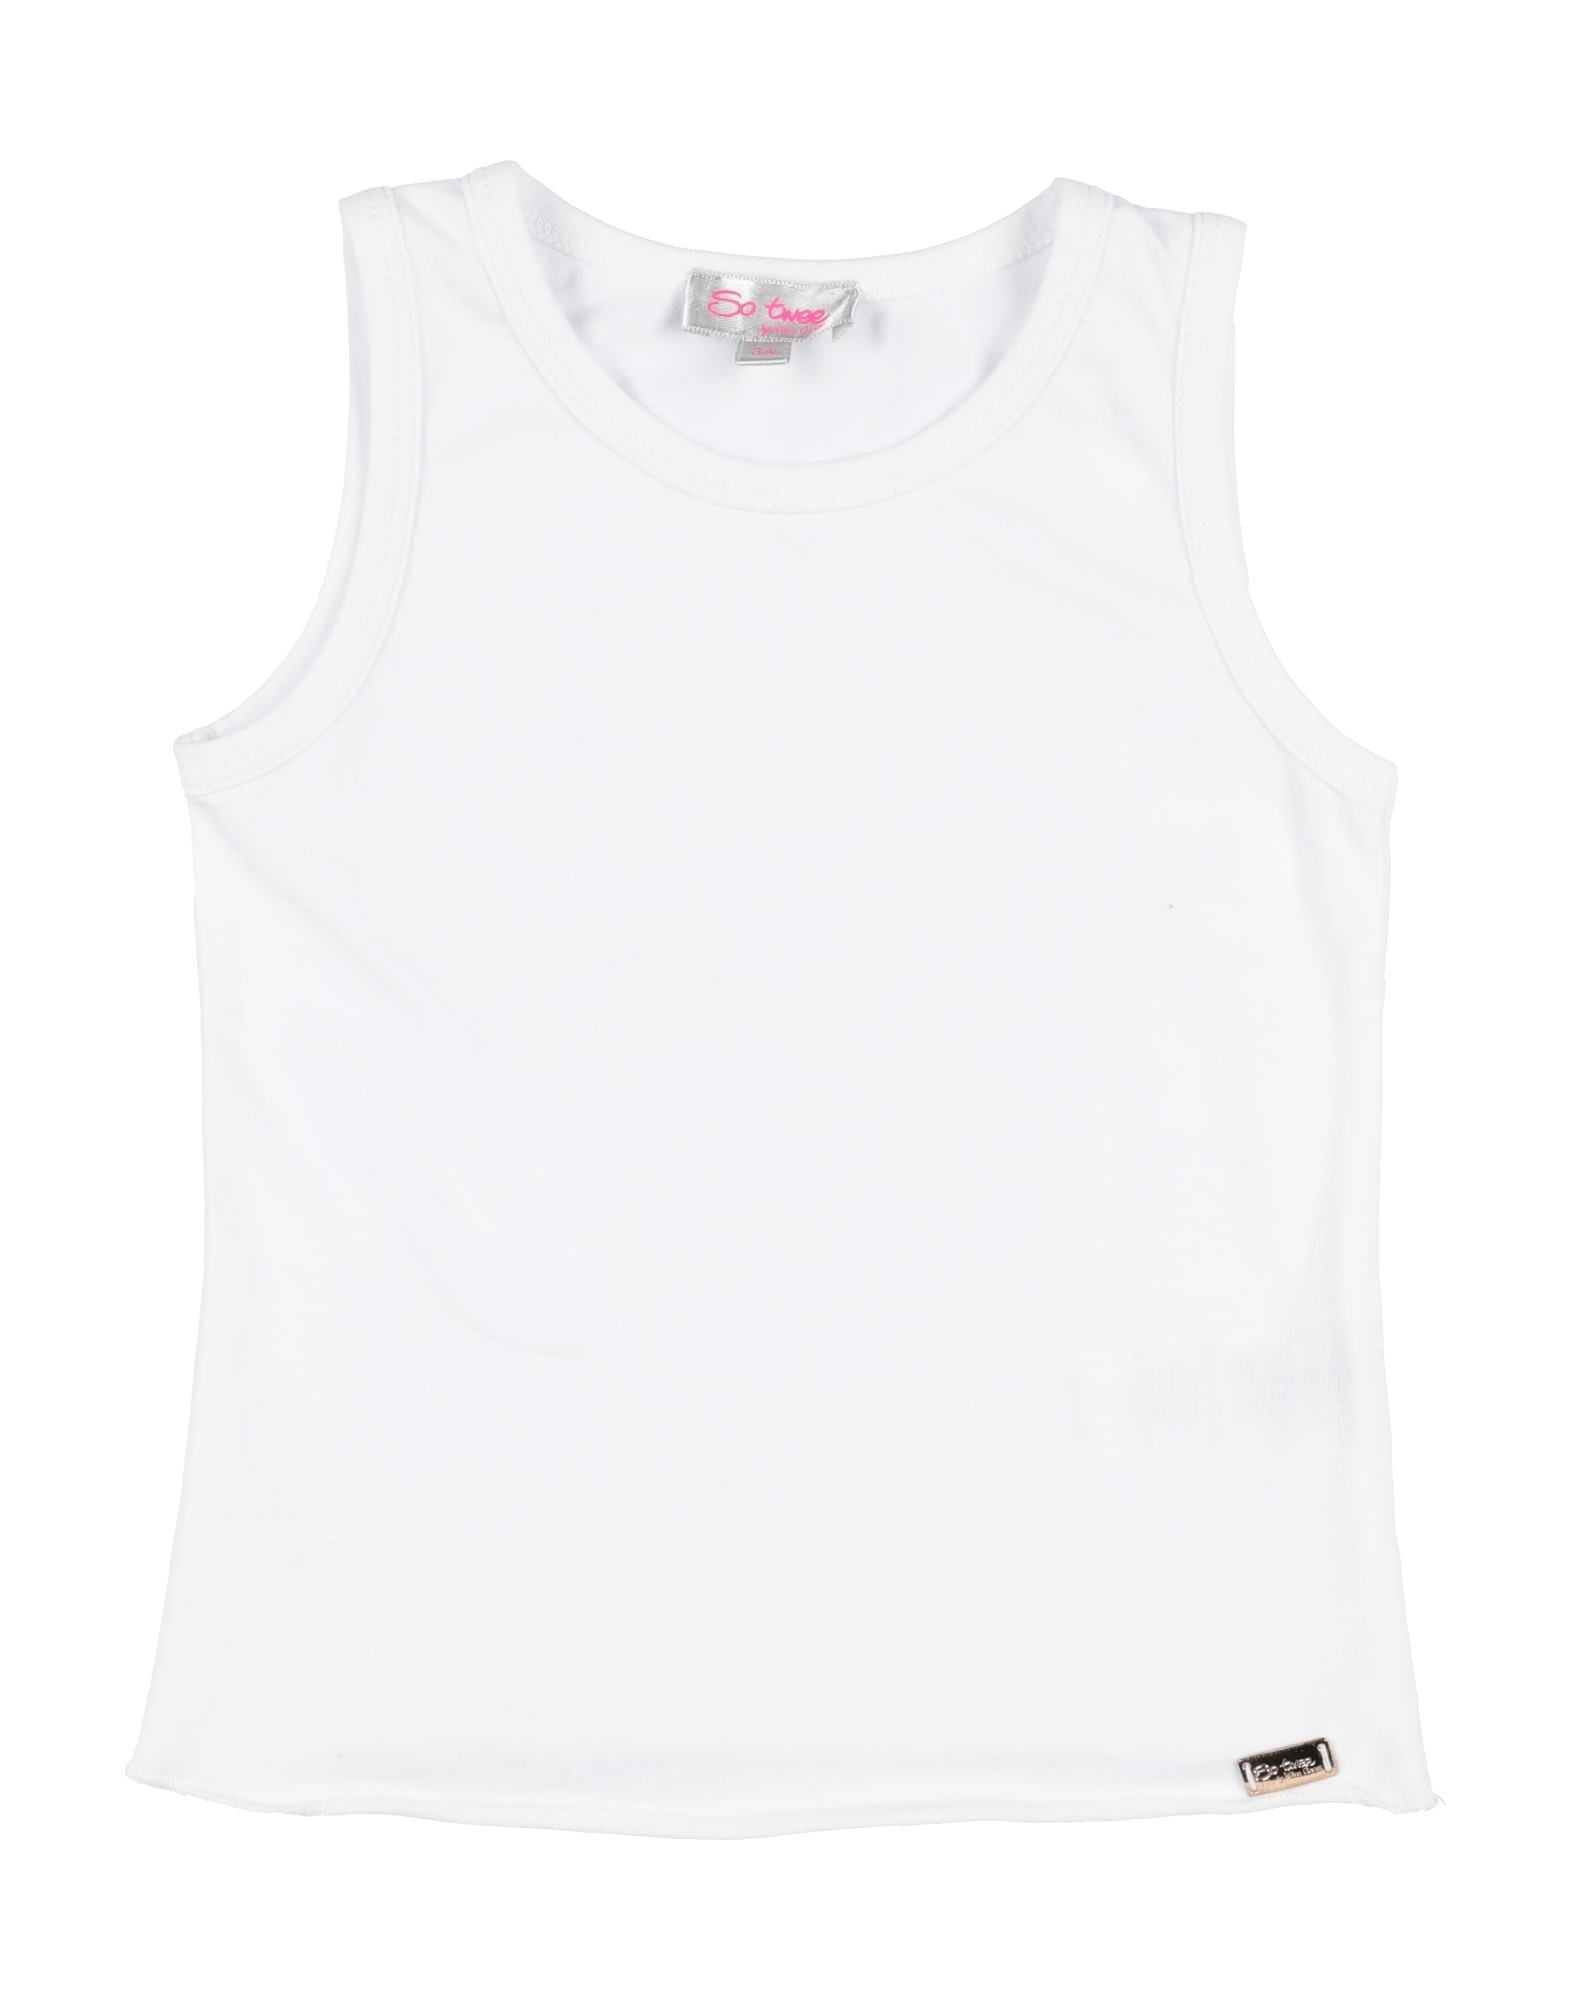 So Twee By Miss Grant Kids' T-shirts In White